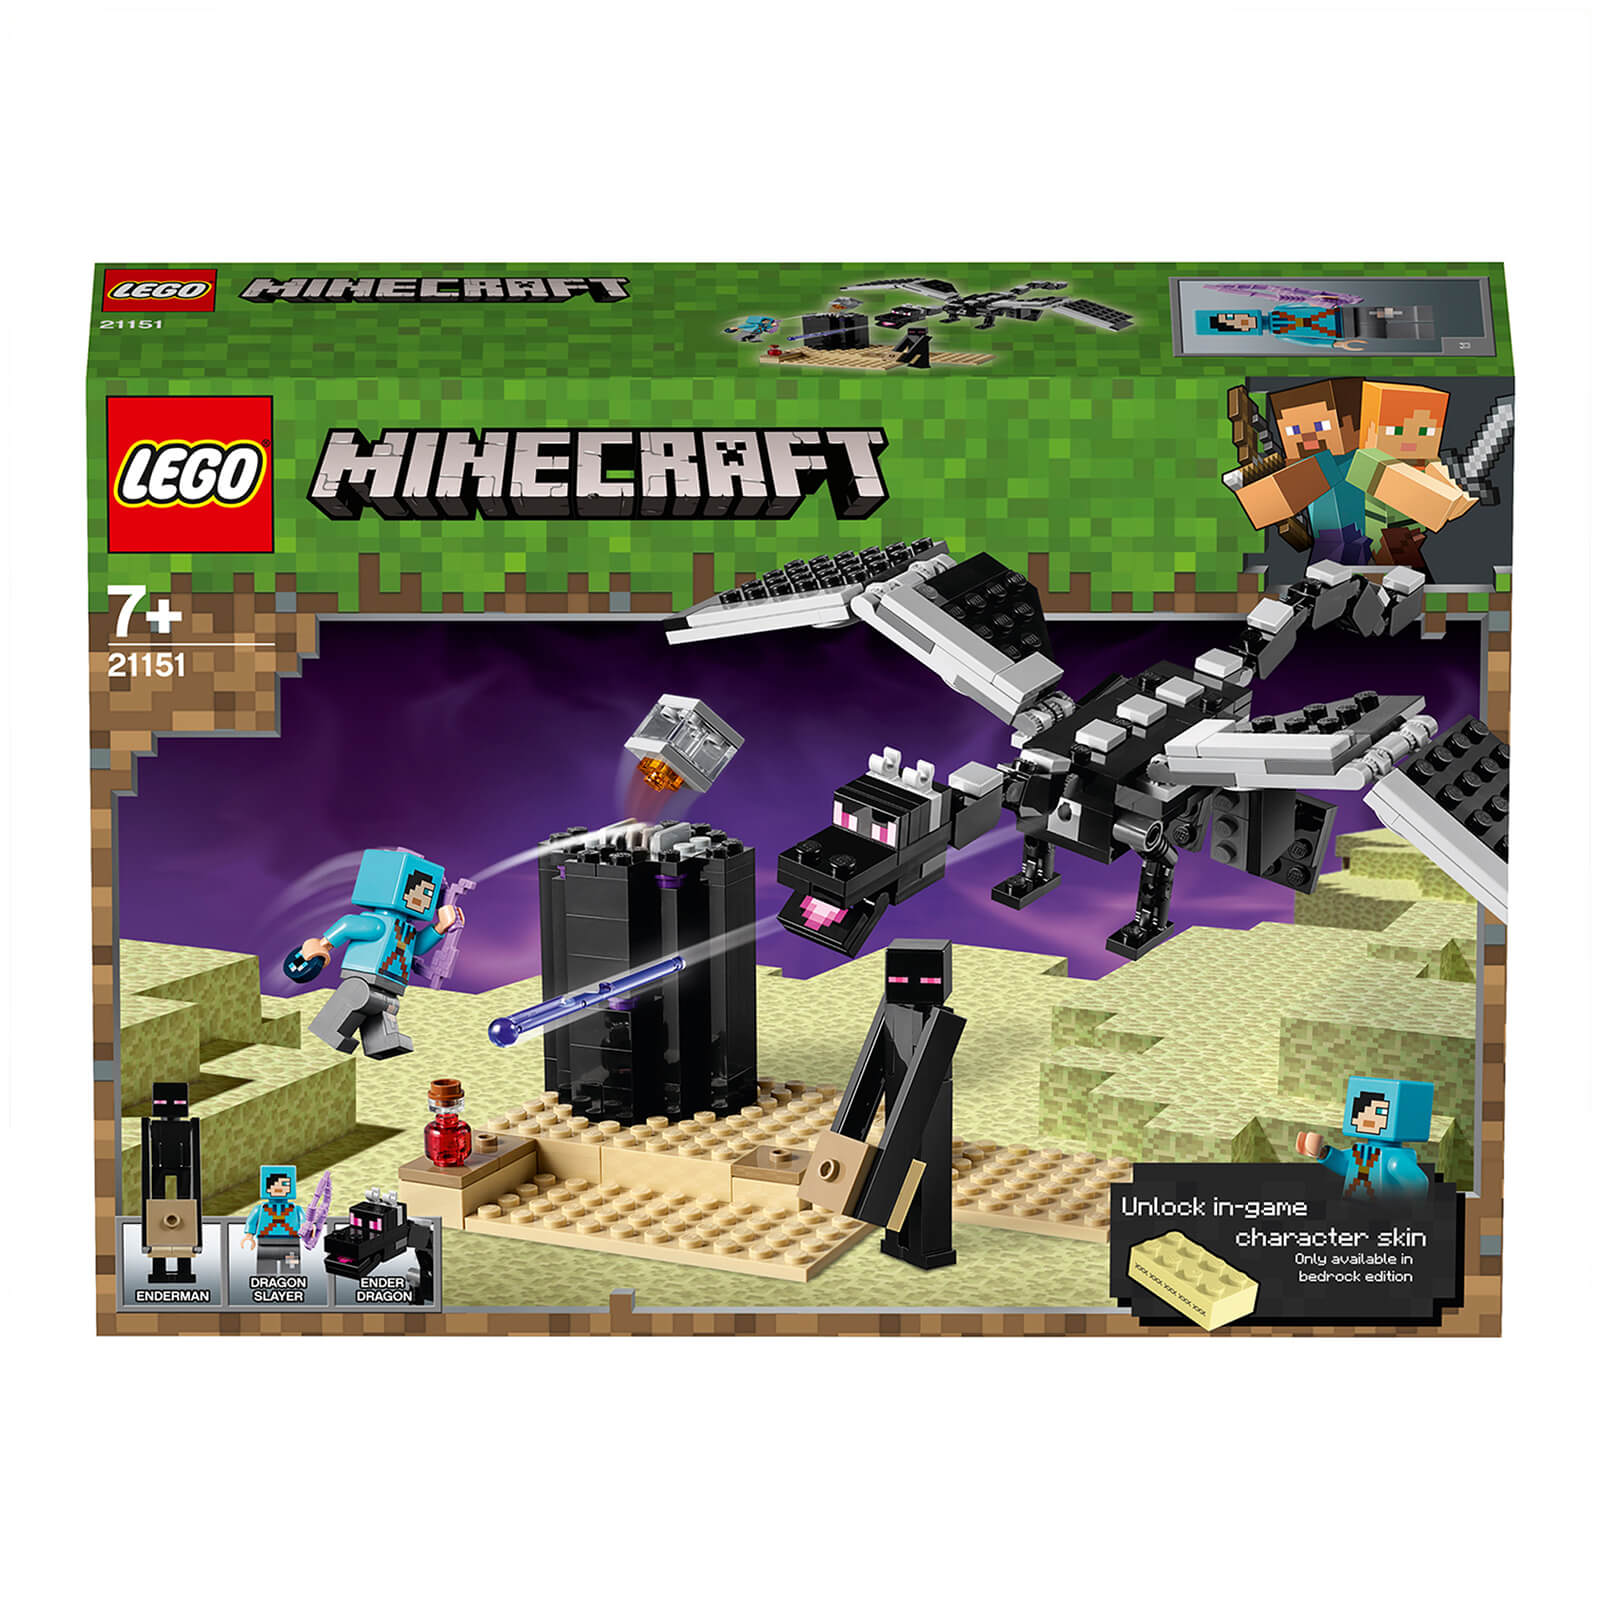 Image of 21151 LEGO® MINECRAFT The last battle